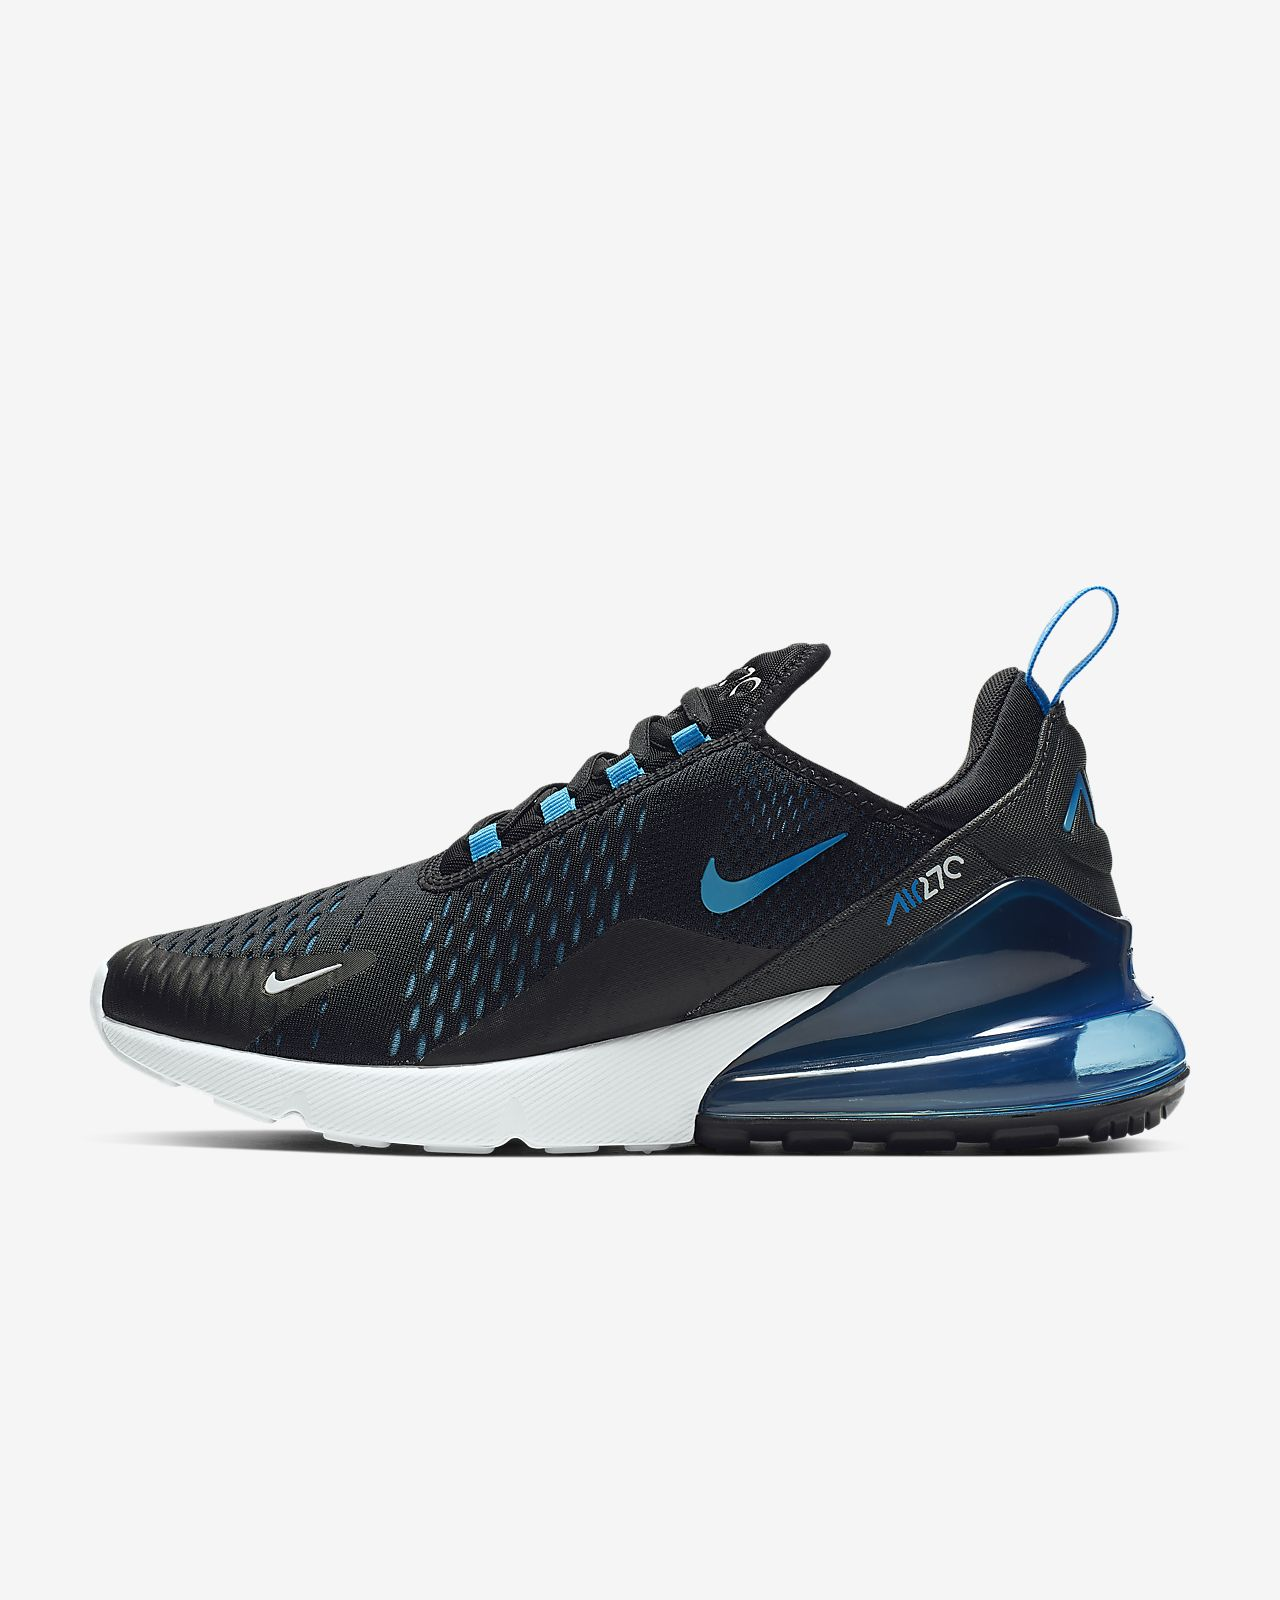 meet 5d41b 86db5 Men s Shoe. Nike Air Max 270